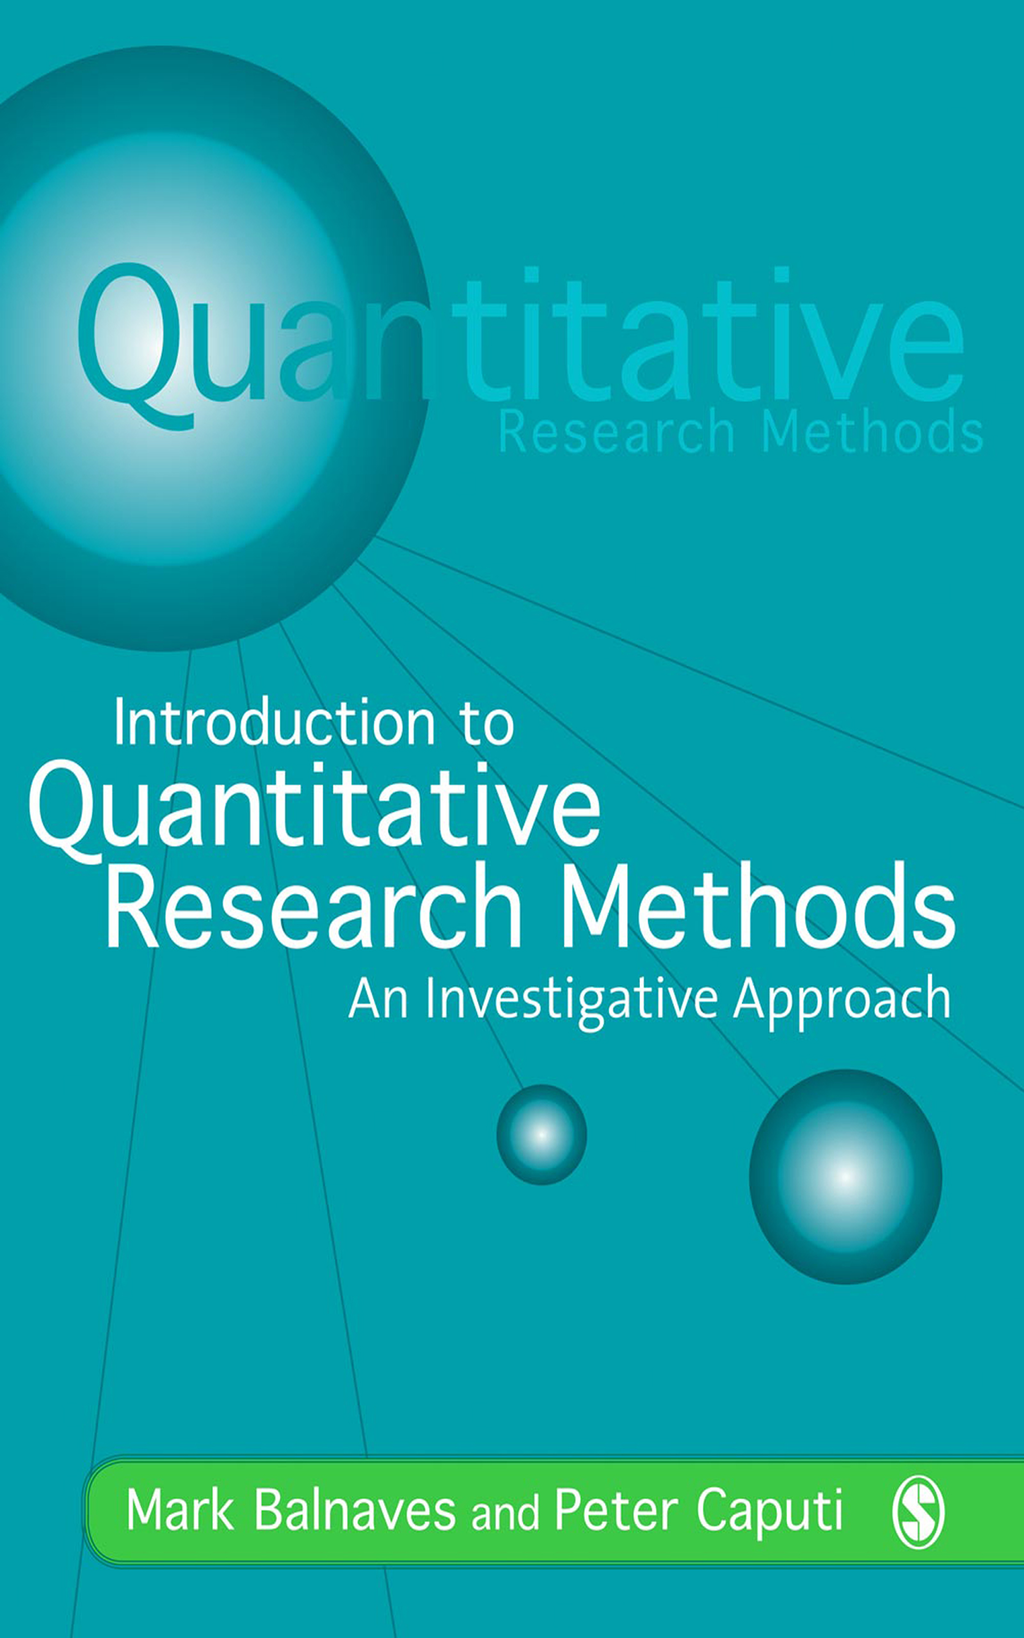 Introduction to Quantitative Research Methods An Investigative Approach